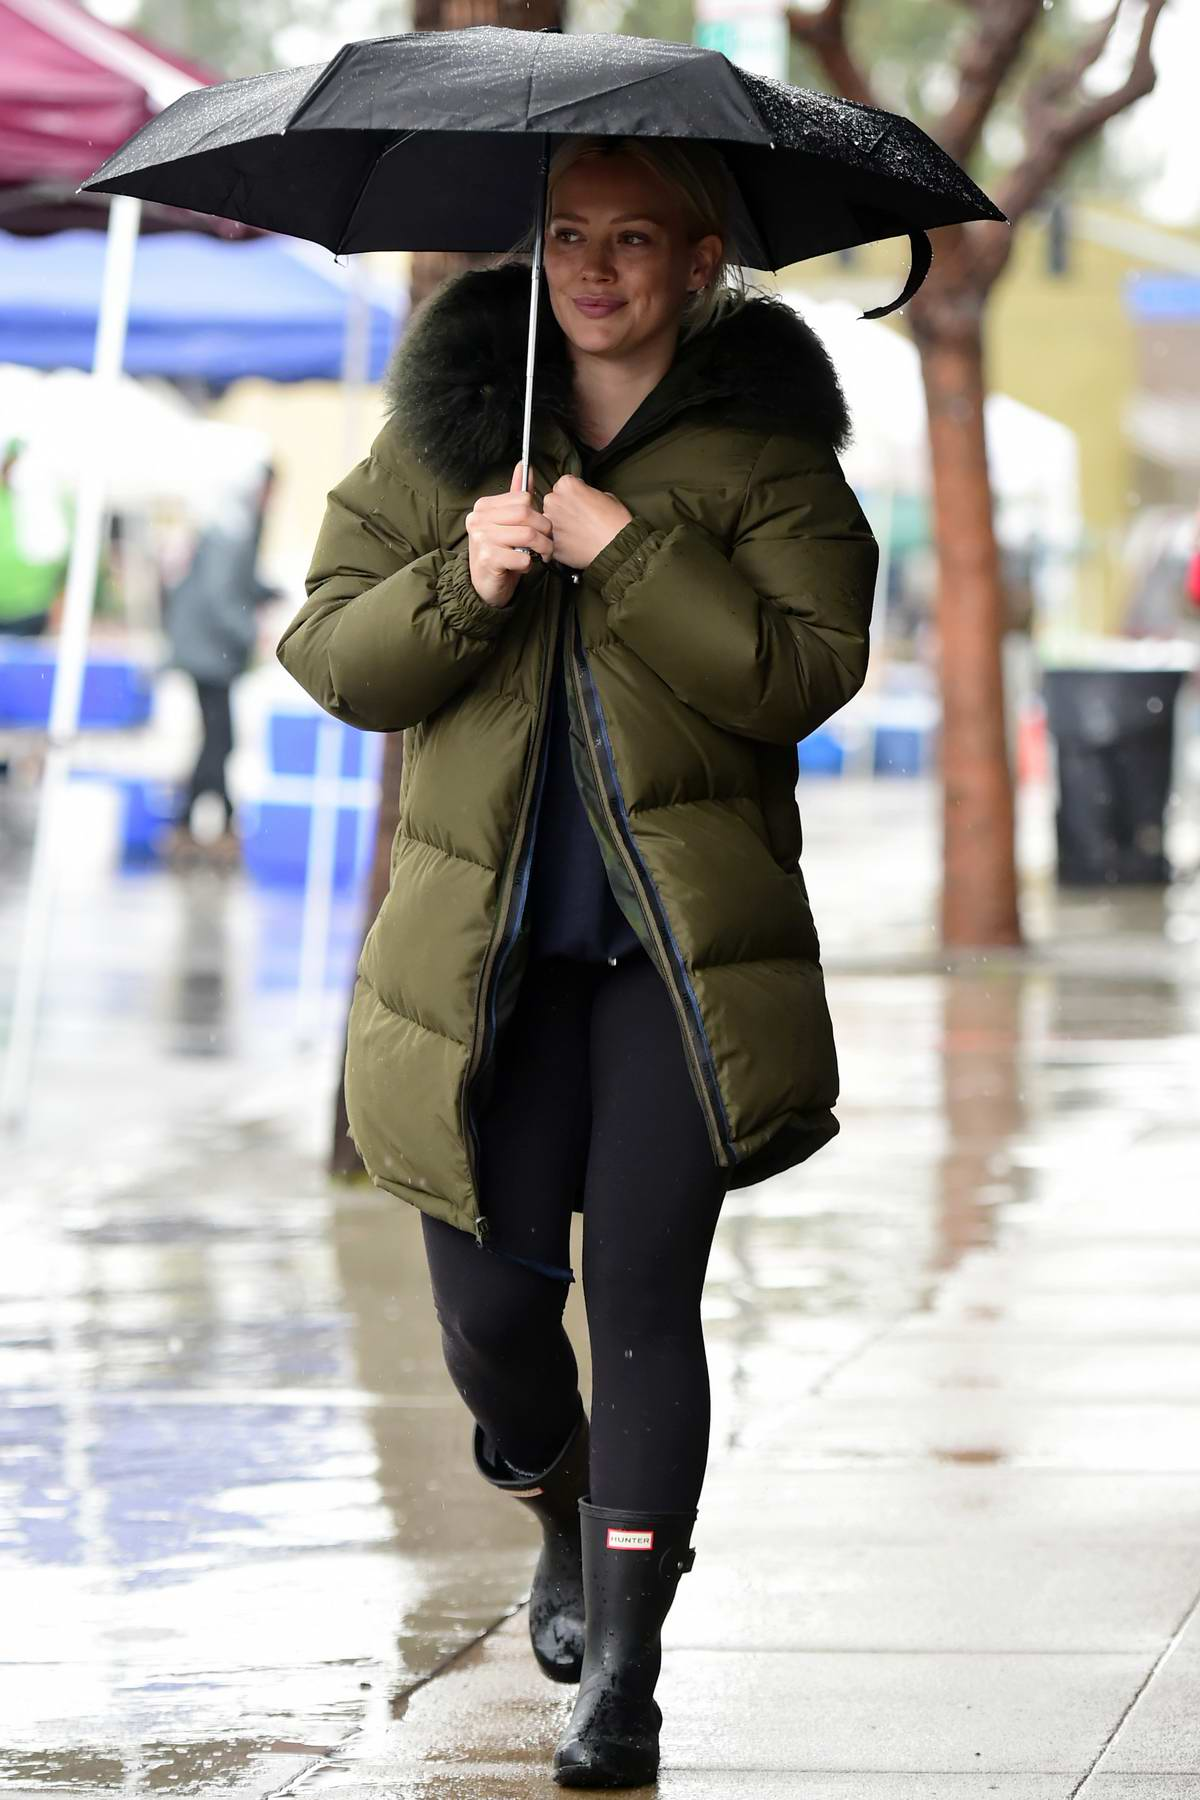 Hilary Duff wore a green puffer jacket, leggings and rain boots while out to pick up lunch to go from Joan's on Third in Studio City, Los Angeles